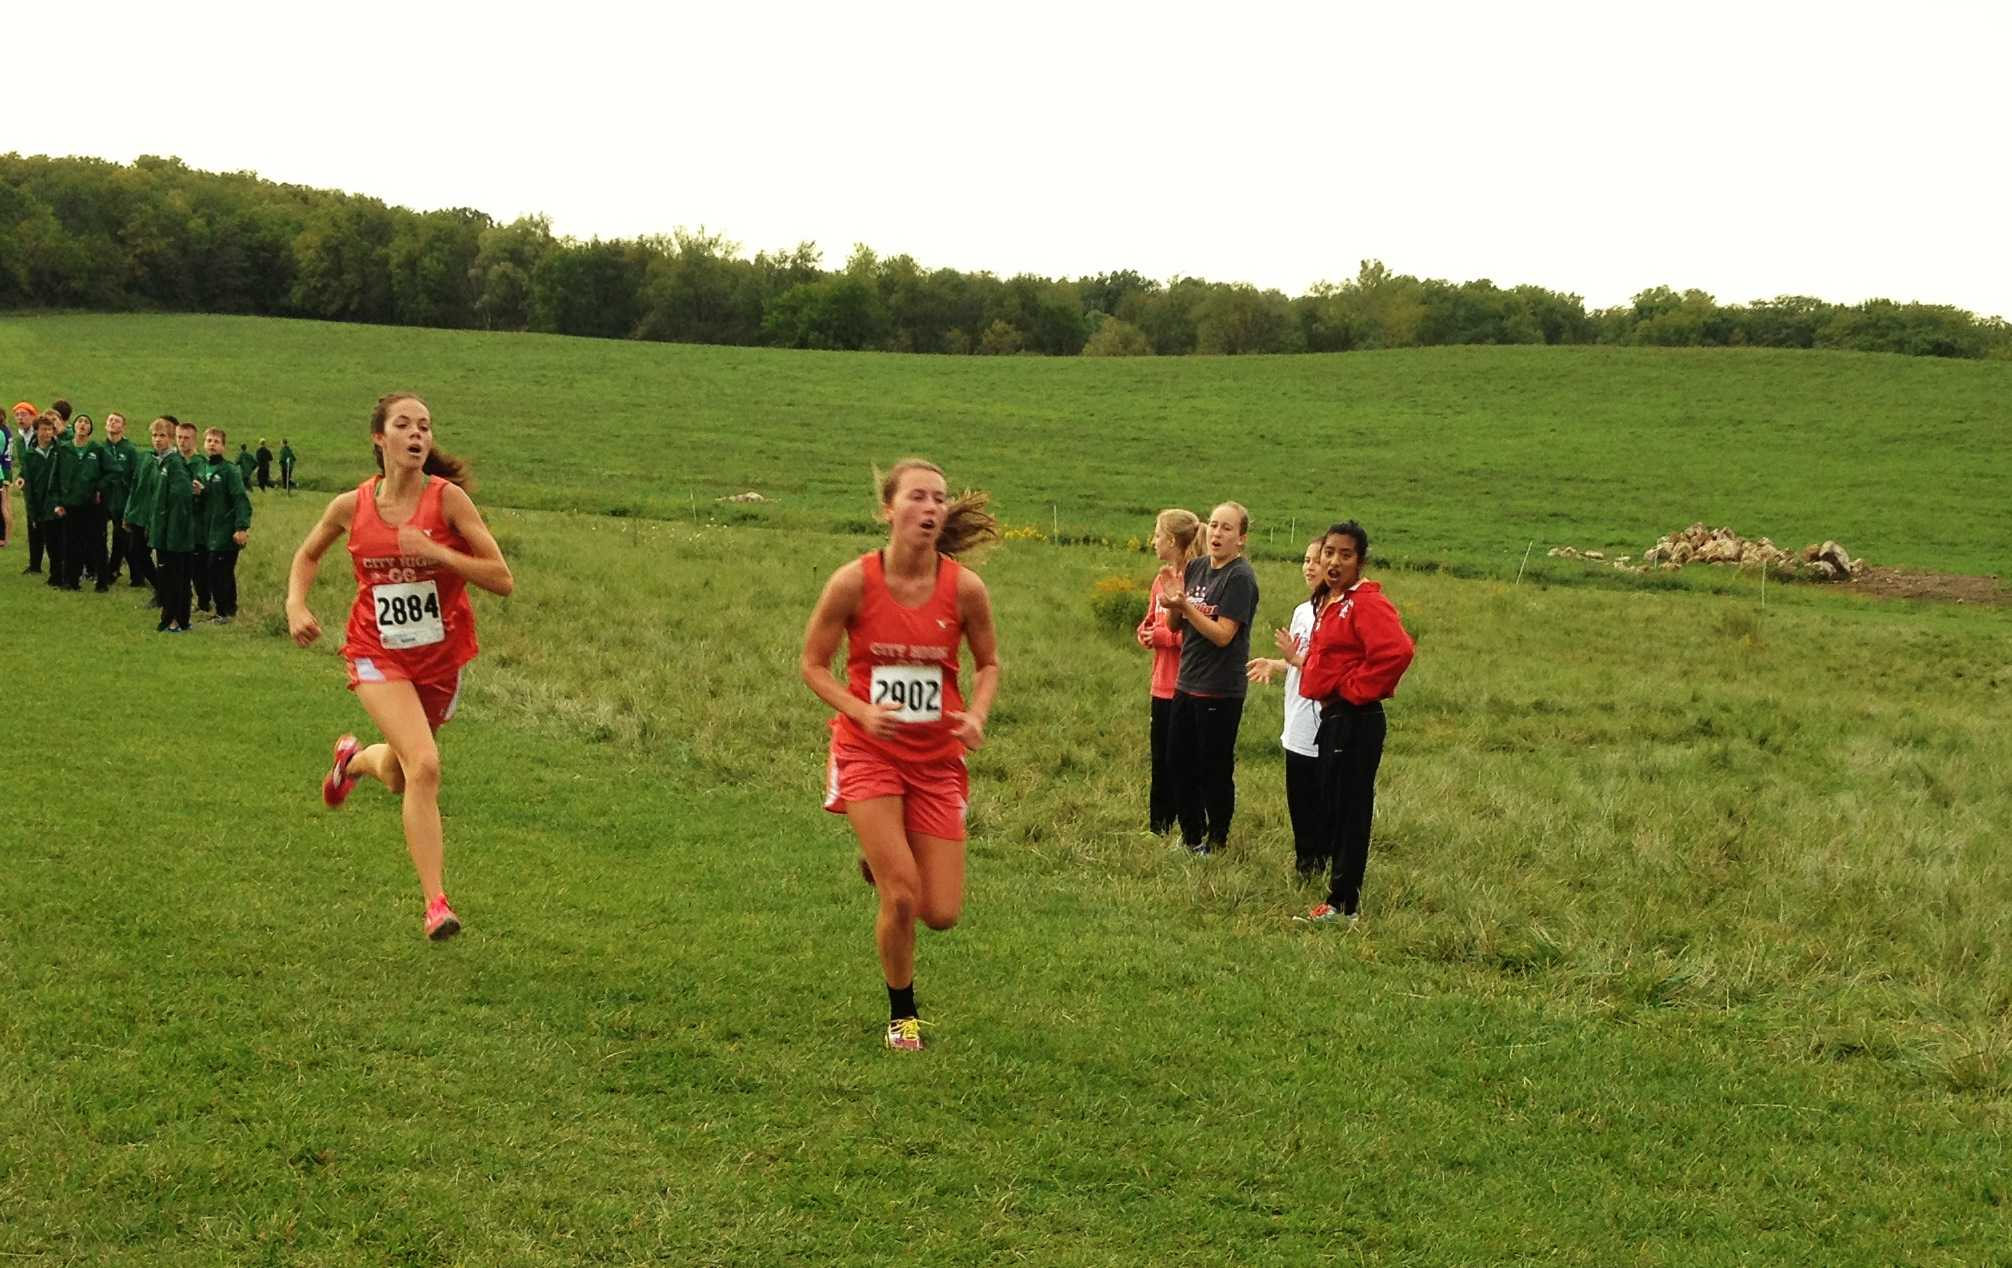 Ellen Carman '14 and Lindsey Bruns '13 run in The Little Hawk Invite. Photo by Jon Rogers.